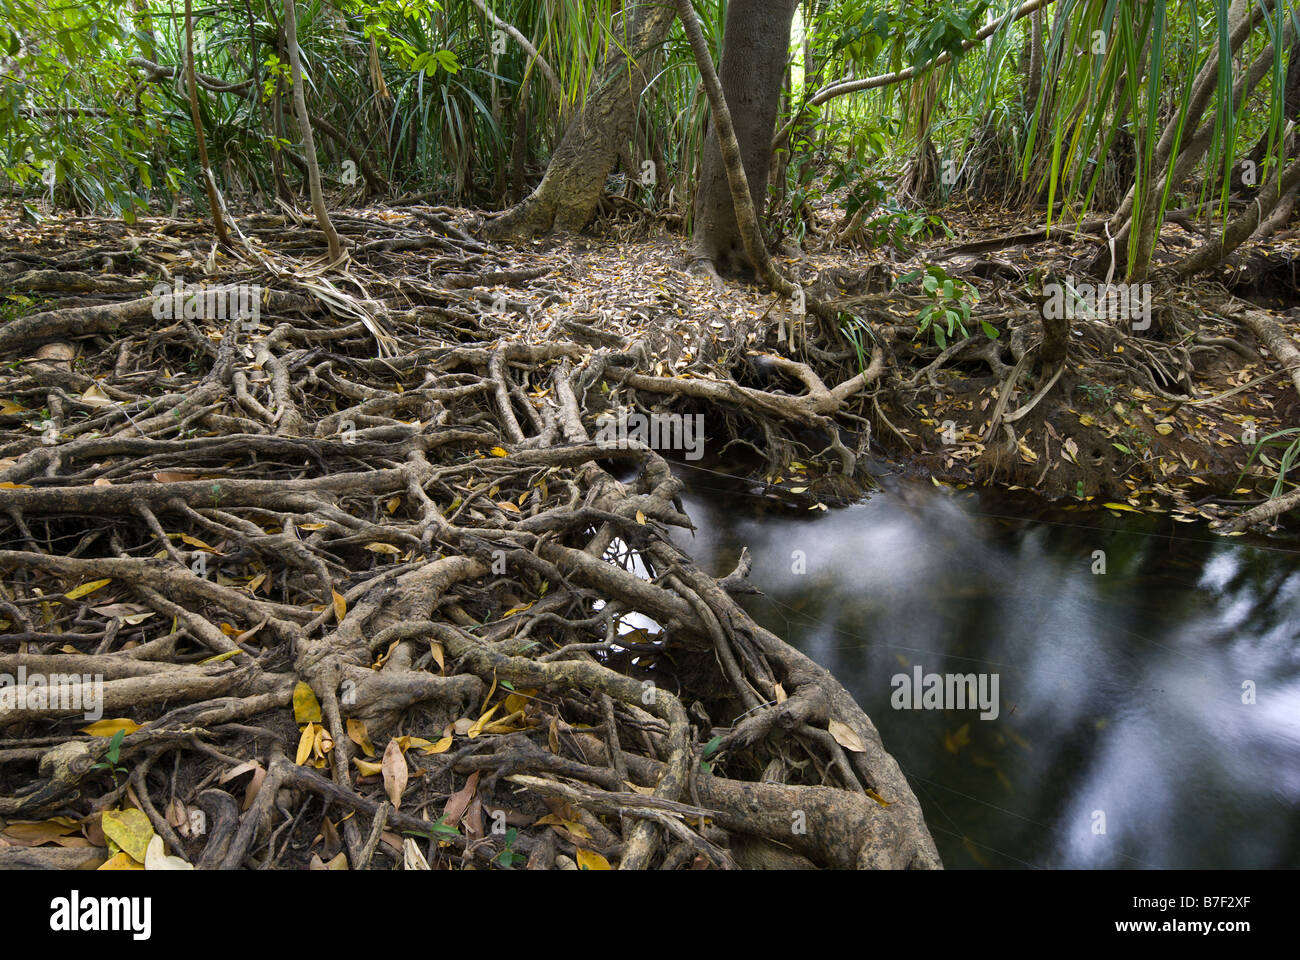 Roots exposed at the start of the dry season in monsoon forests near Gunlom in Kakadu National Park - Stock Image